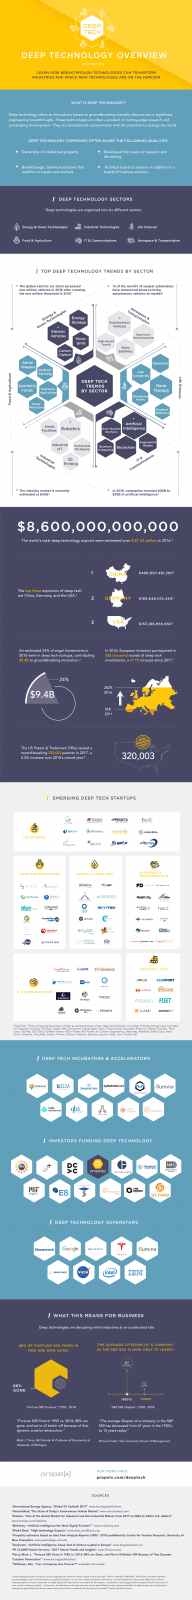 Deep Technology infographic showing trends in science and technology on the cutting edge of innovation and scientific discovery